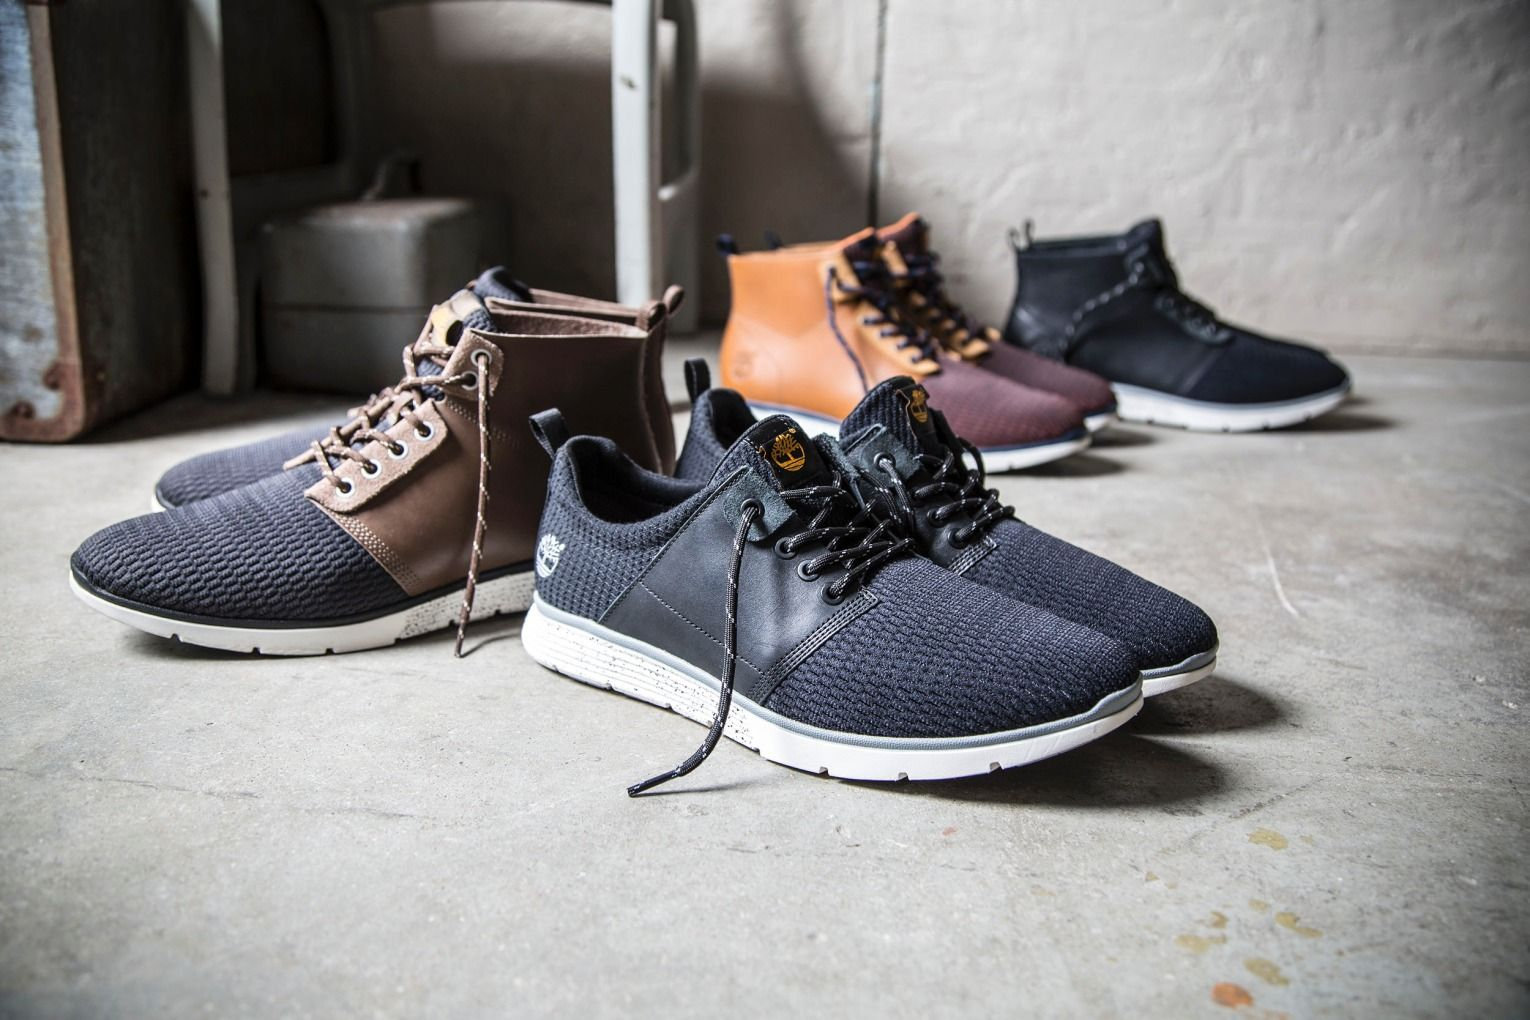 Men's Killington Chukka Sneaker Boots | Chukka sneakers